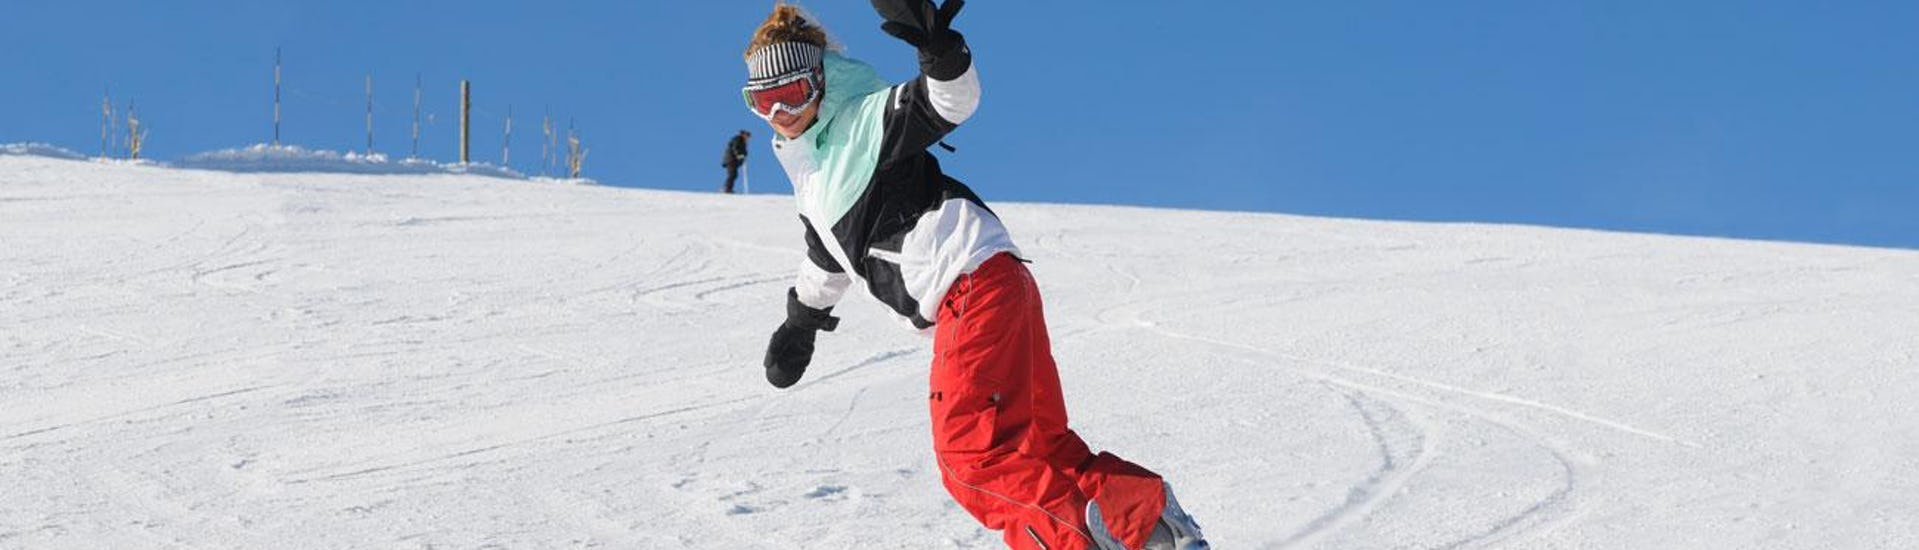 Snowboarding Lessons - All Ages & Levels